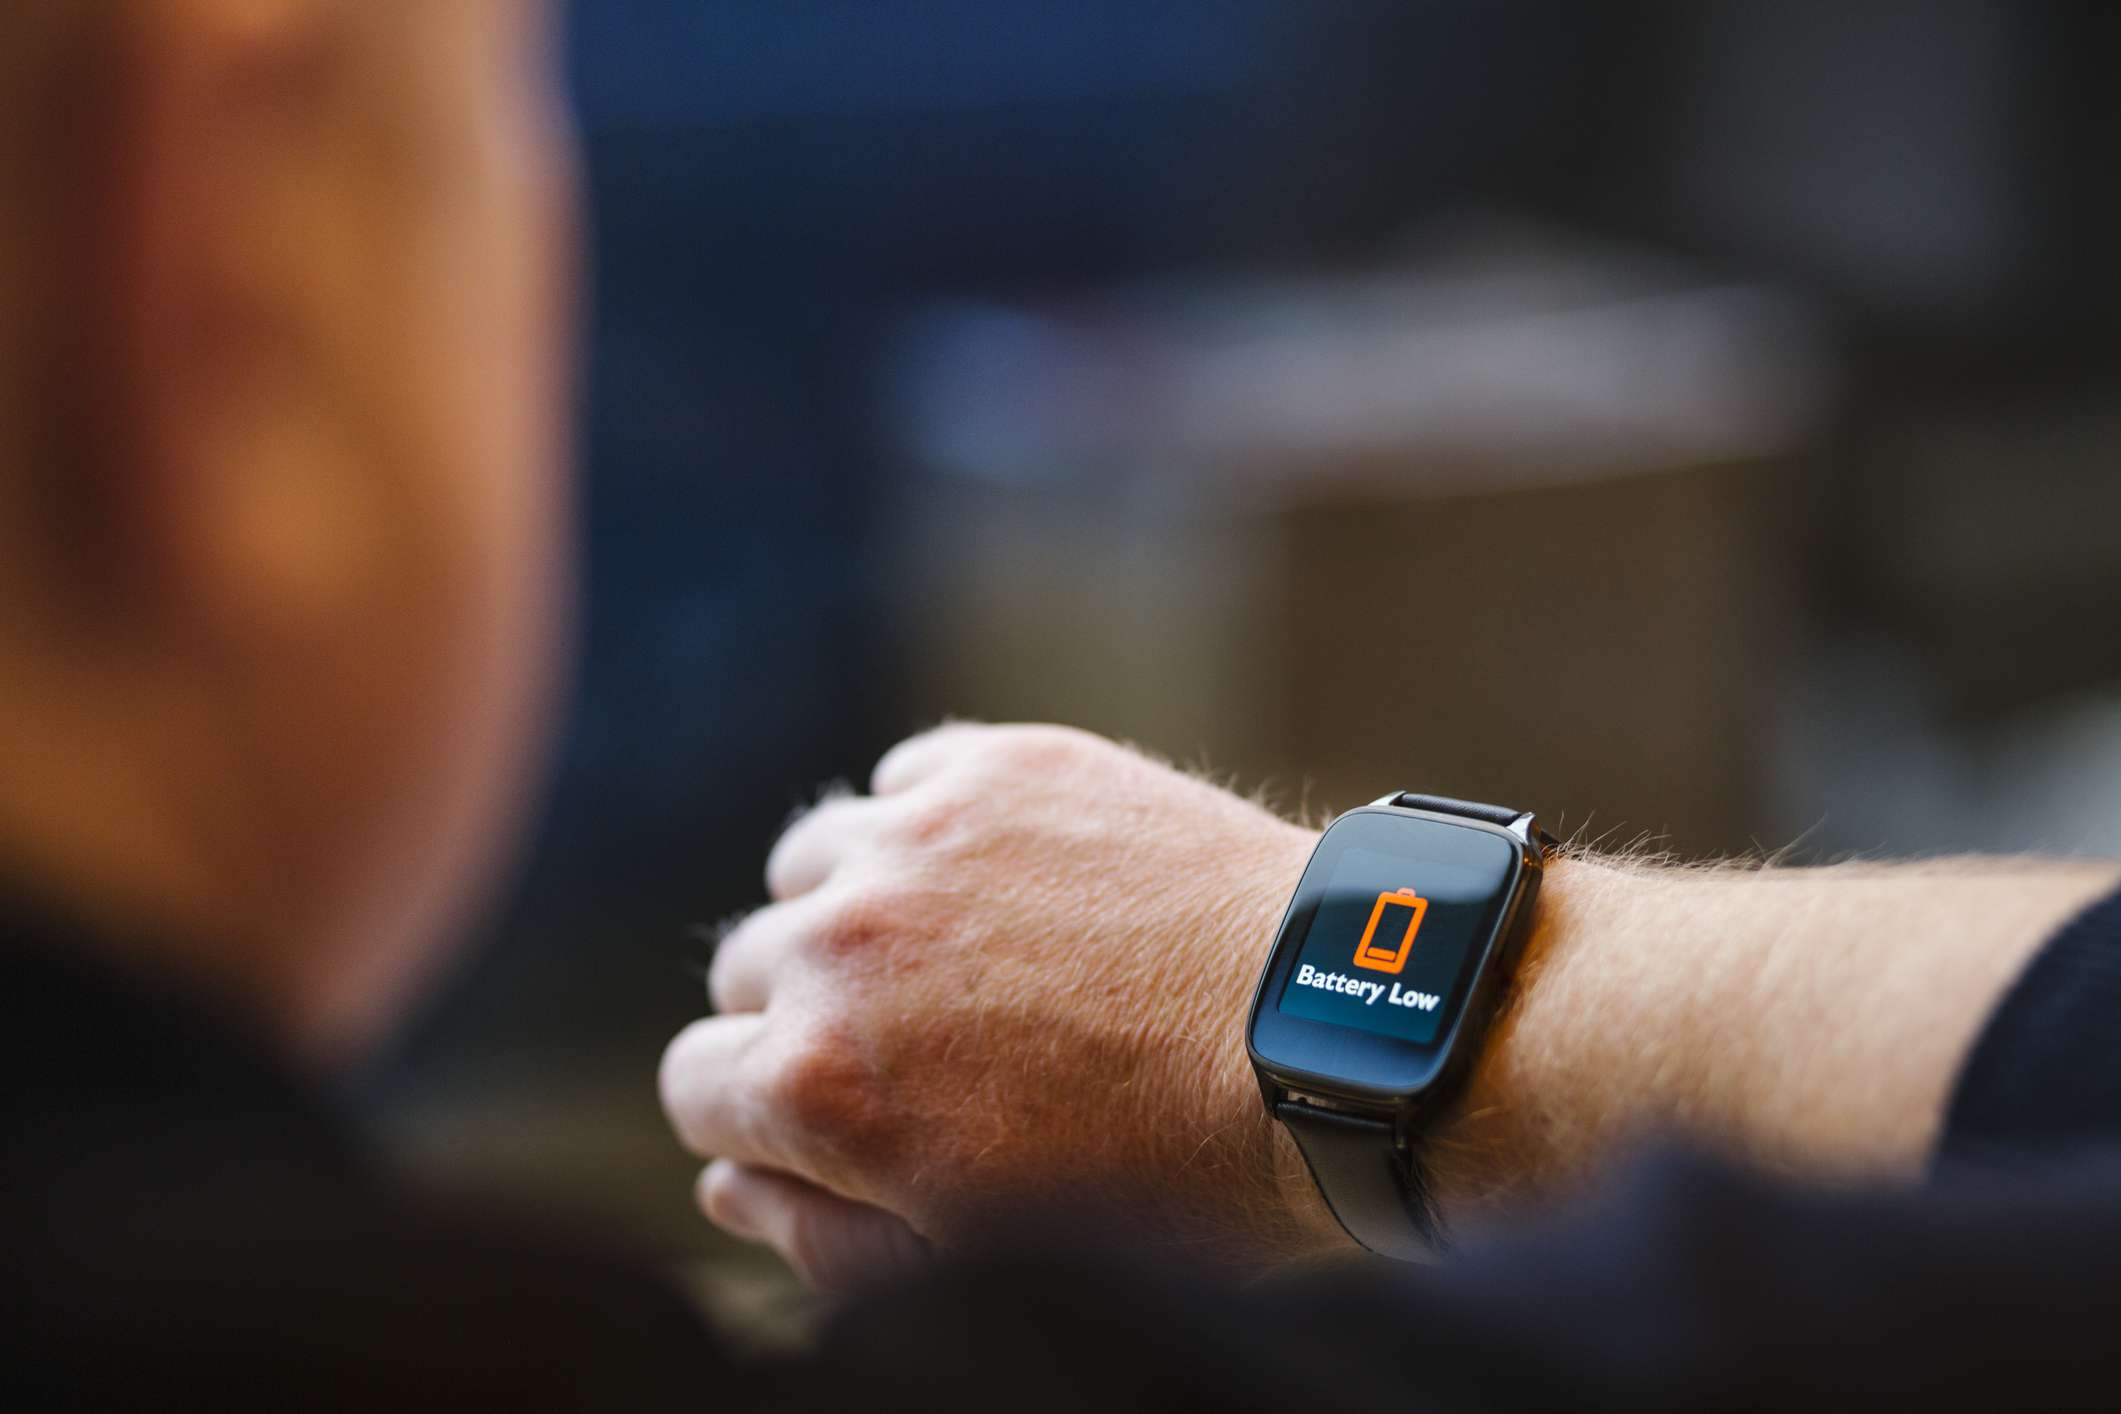 Someone wearing a smart watch with a low battery signal displayed on the face of it.